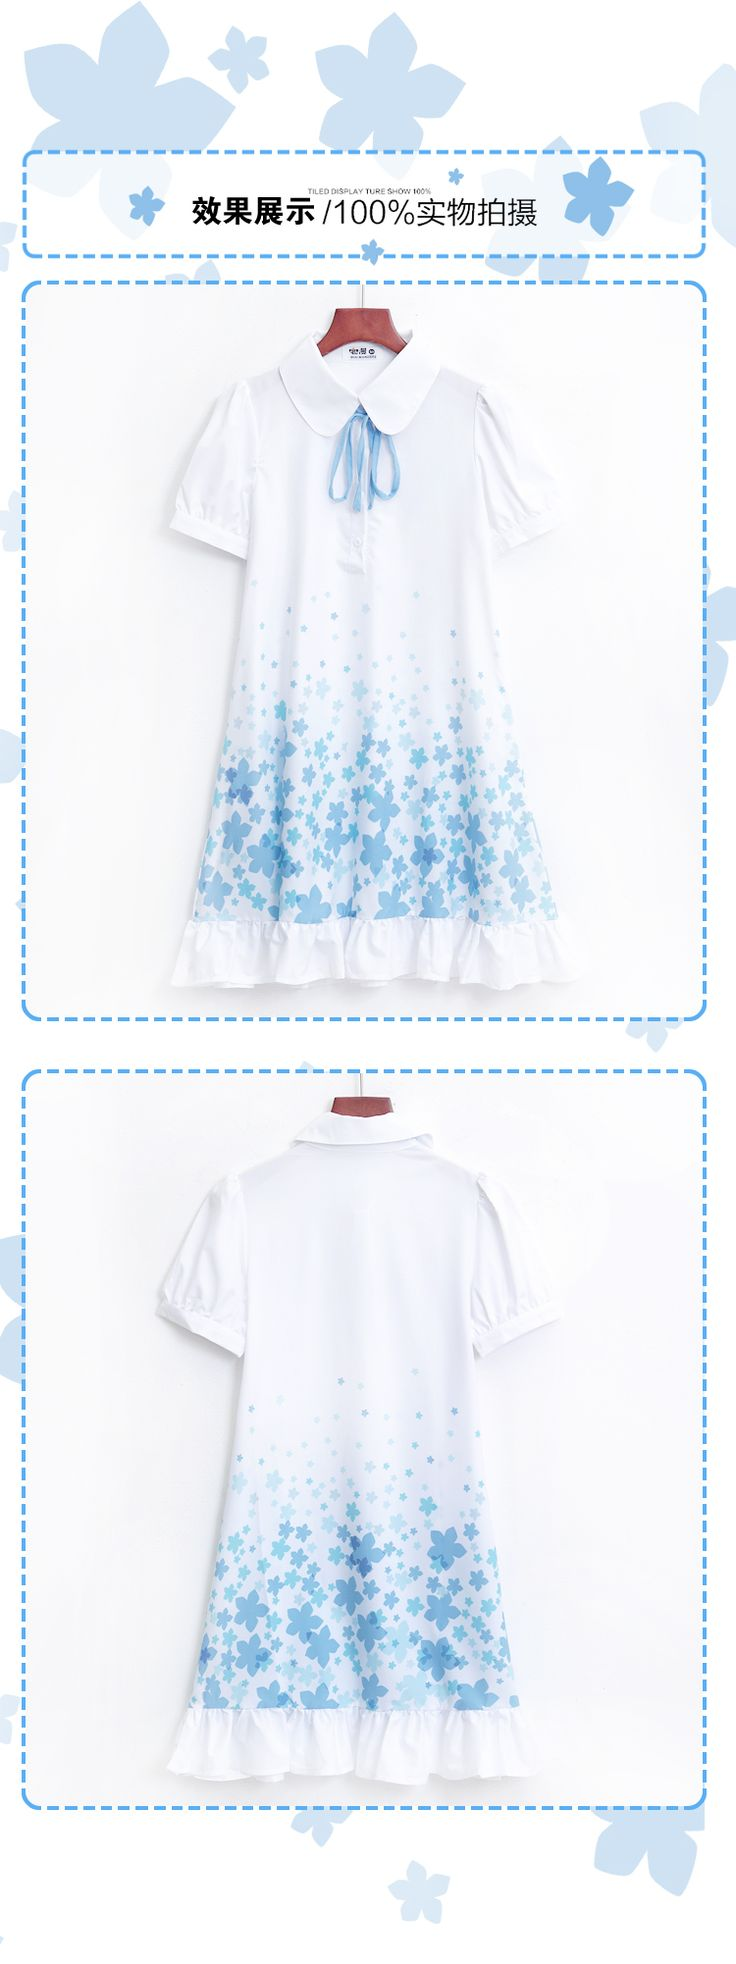 Spot House Man unheard nickname / flower Unnamed / flower / area code impression shirt dress / doll dress anime - Taobao global Station